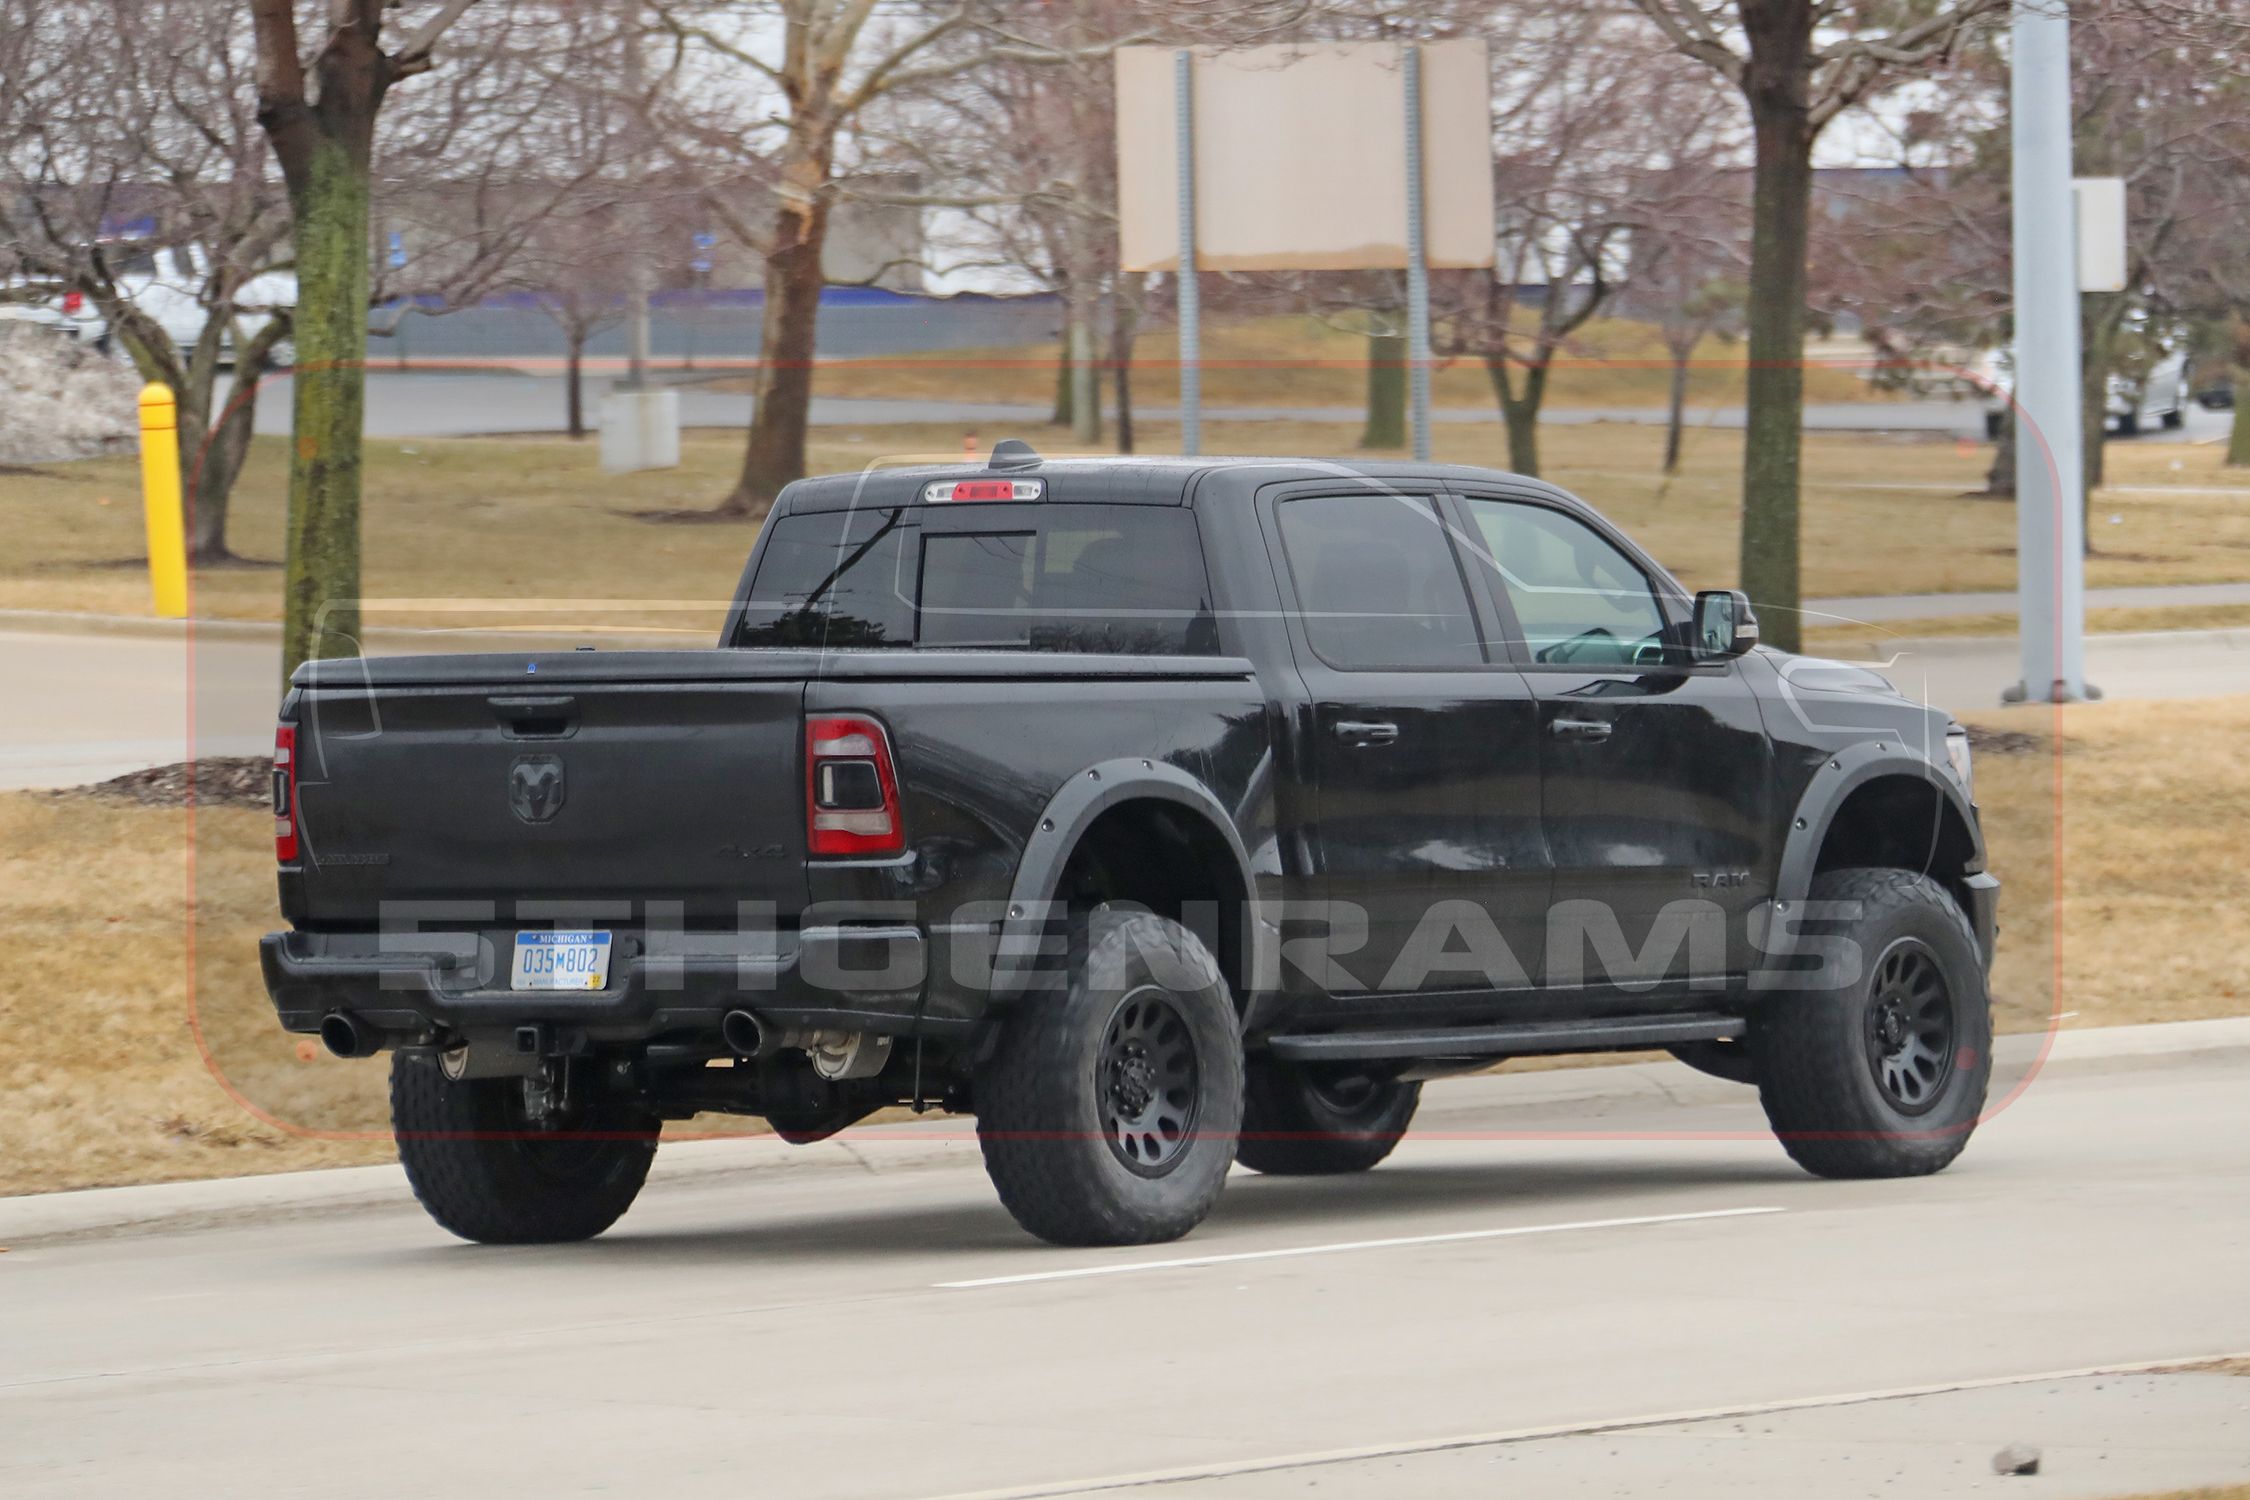 Video New Photos And Video Of The 2021 Rebel Trx Prototype Mopar